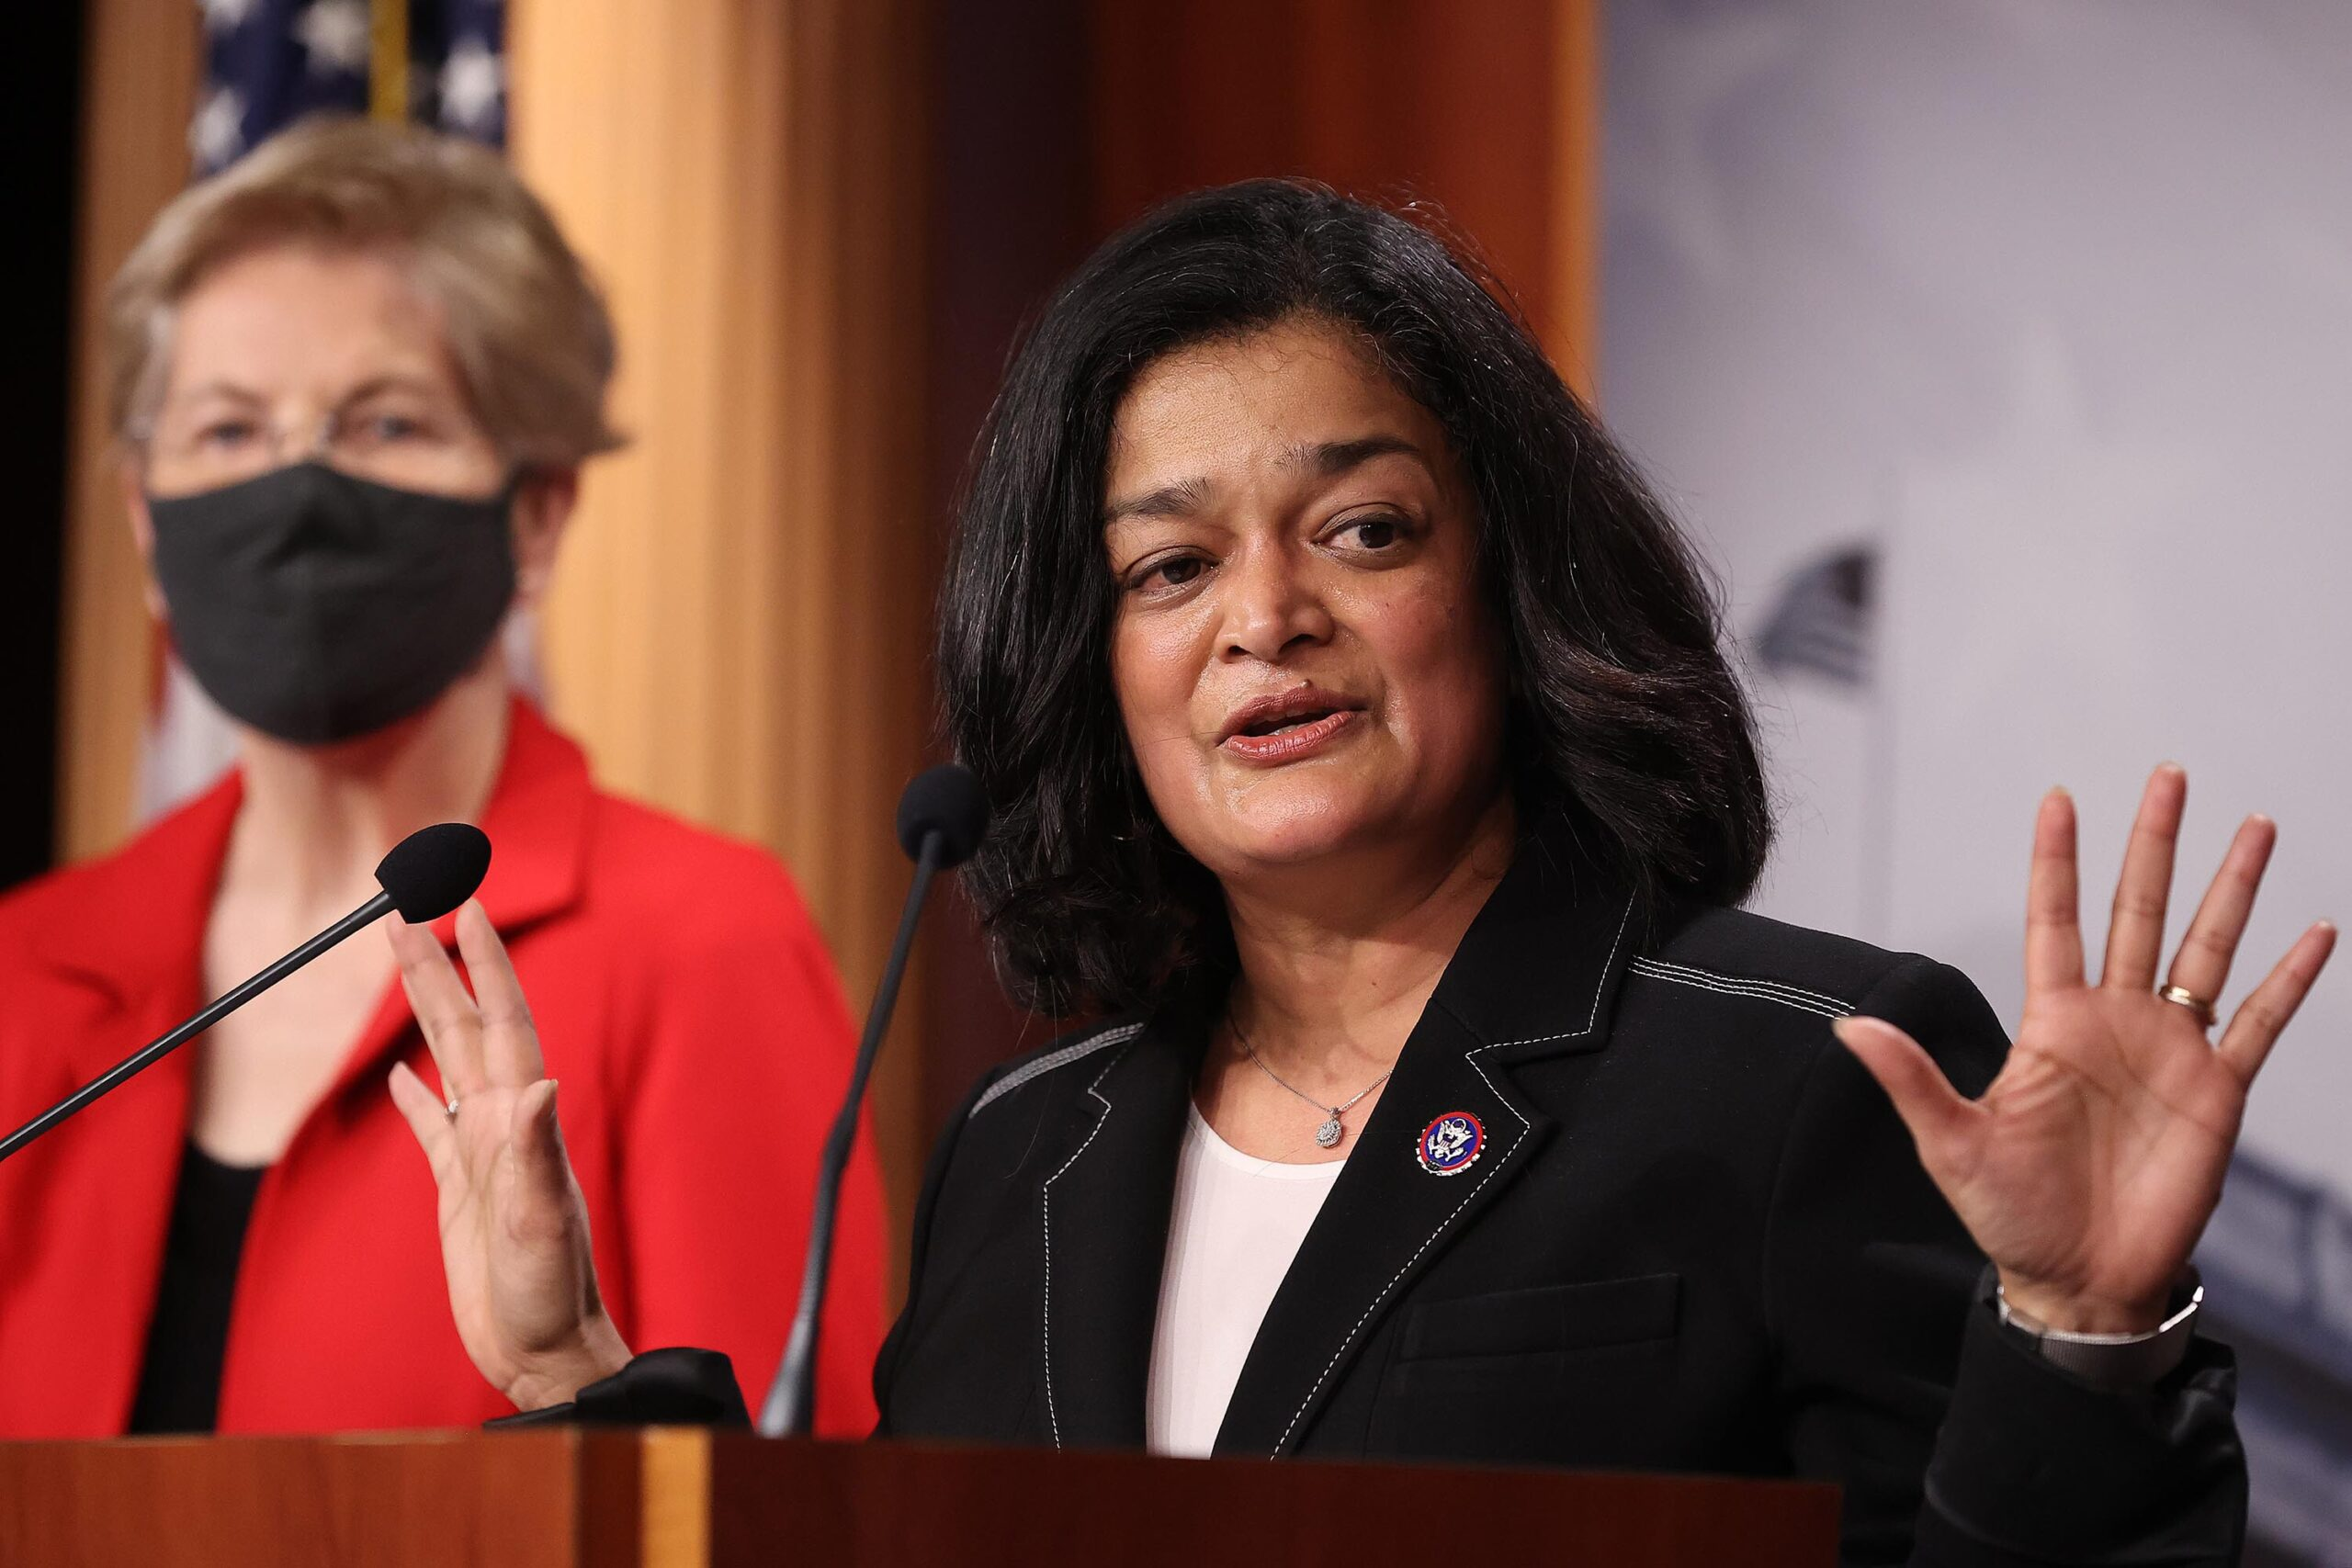 <i>Chip Somodevilla/Getty Images</i><br/>Rep. Pramila Jayapal (D-WA) (right) speaks during a news conference with Sen. Elizabeth Warren (D-MA) to announce legislation that would tax the net worth of America's wealthiest individuals at the U.S. Capitol on March 01